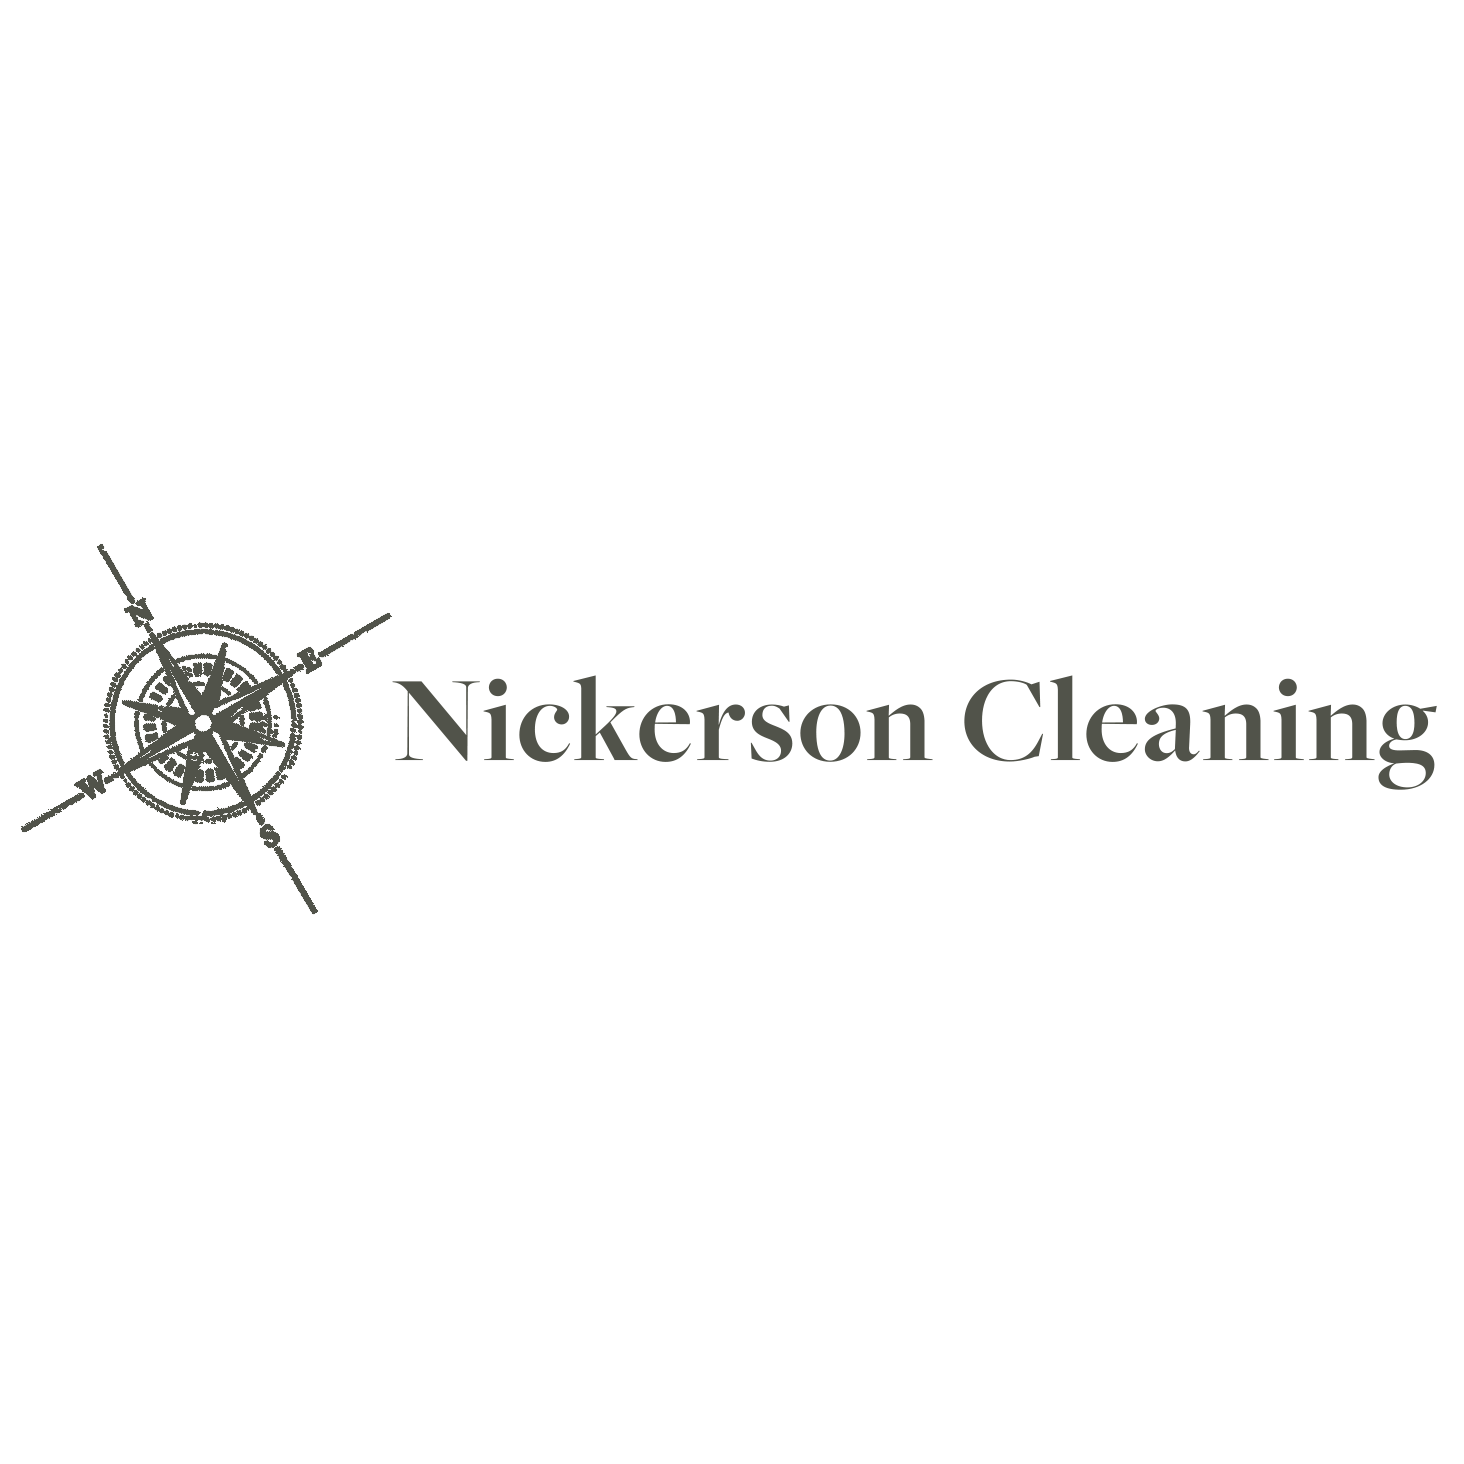 Nickerson Cleaning Logo